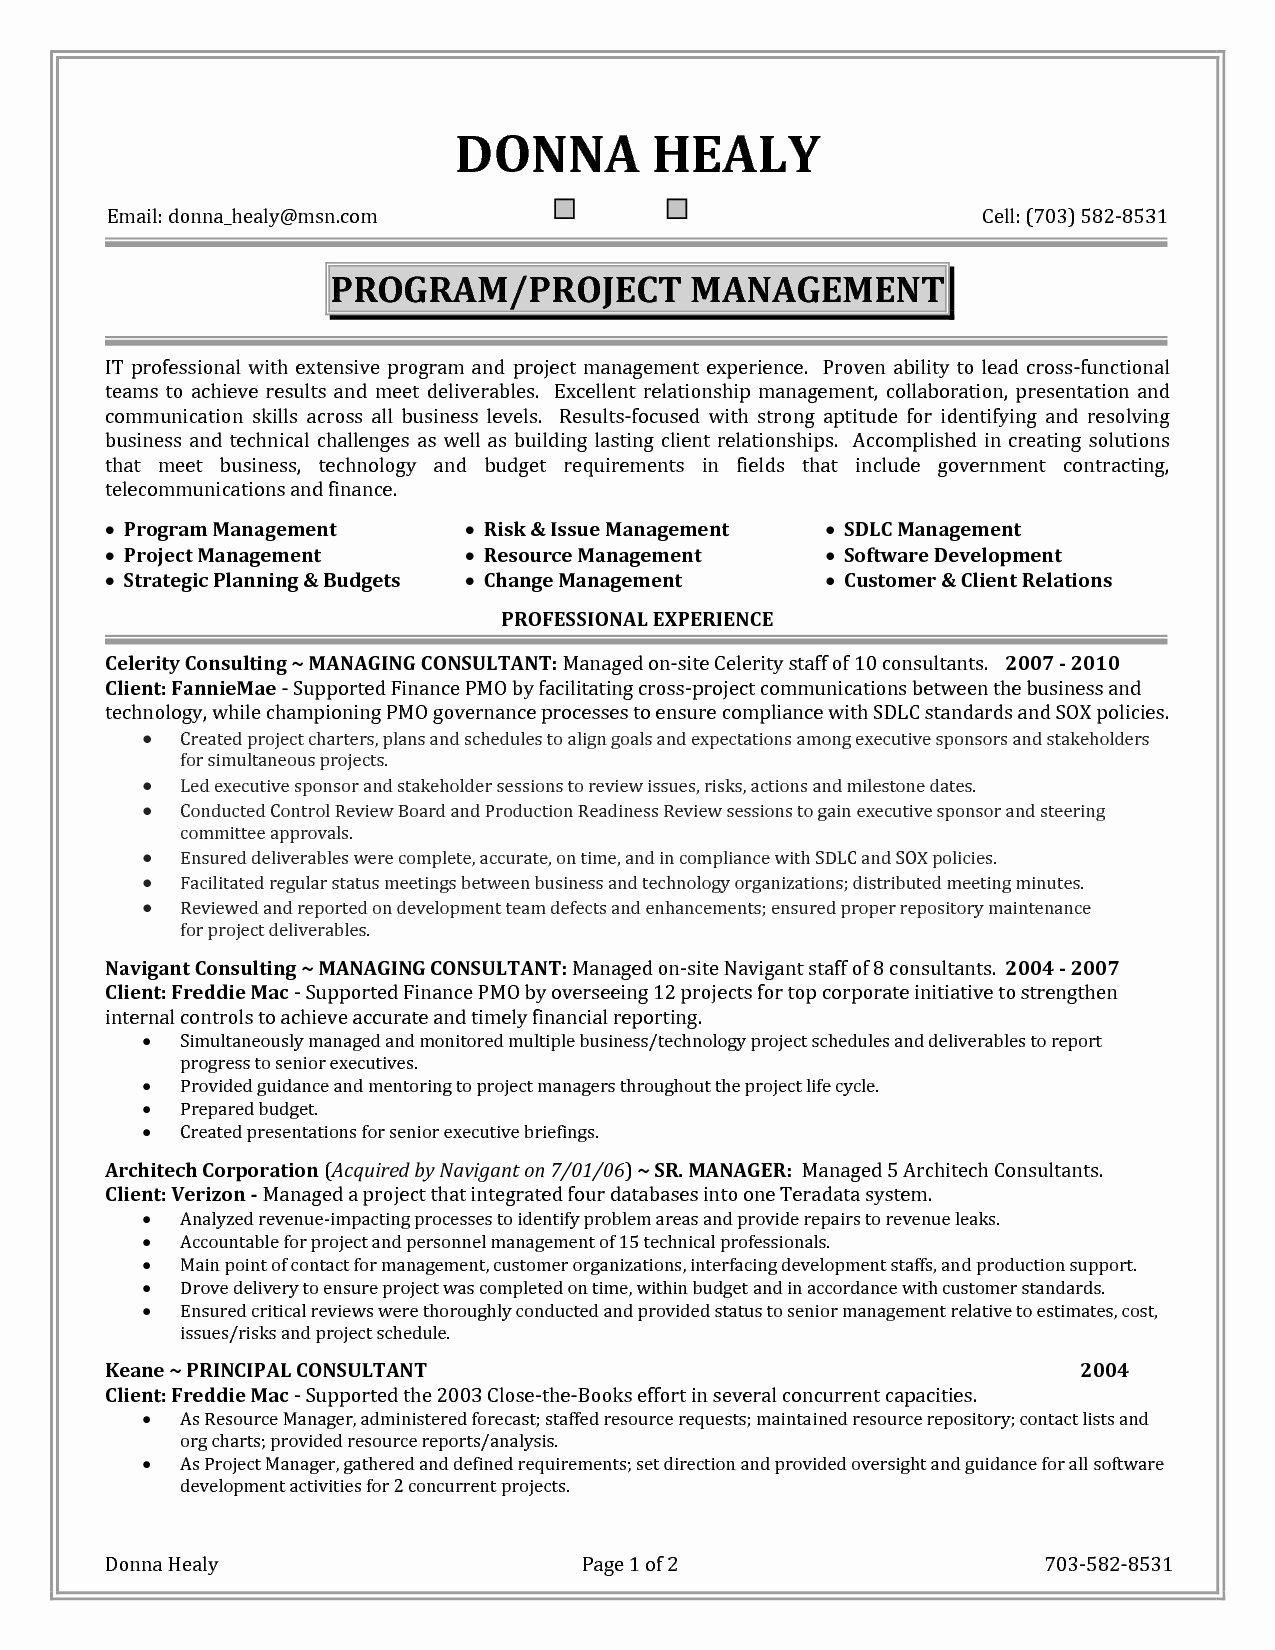 time management skills resume printable template in project manager planning for Resume Planning Skills For Resume